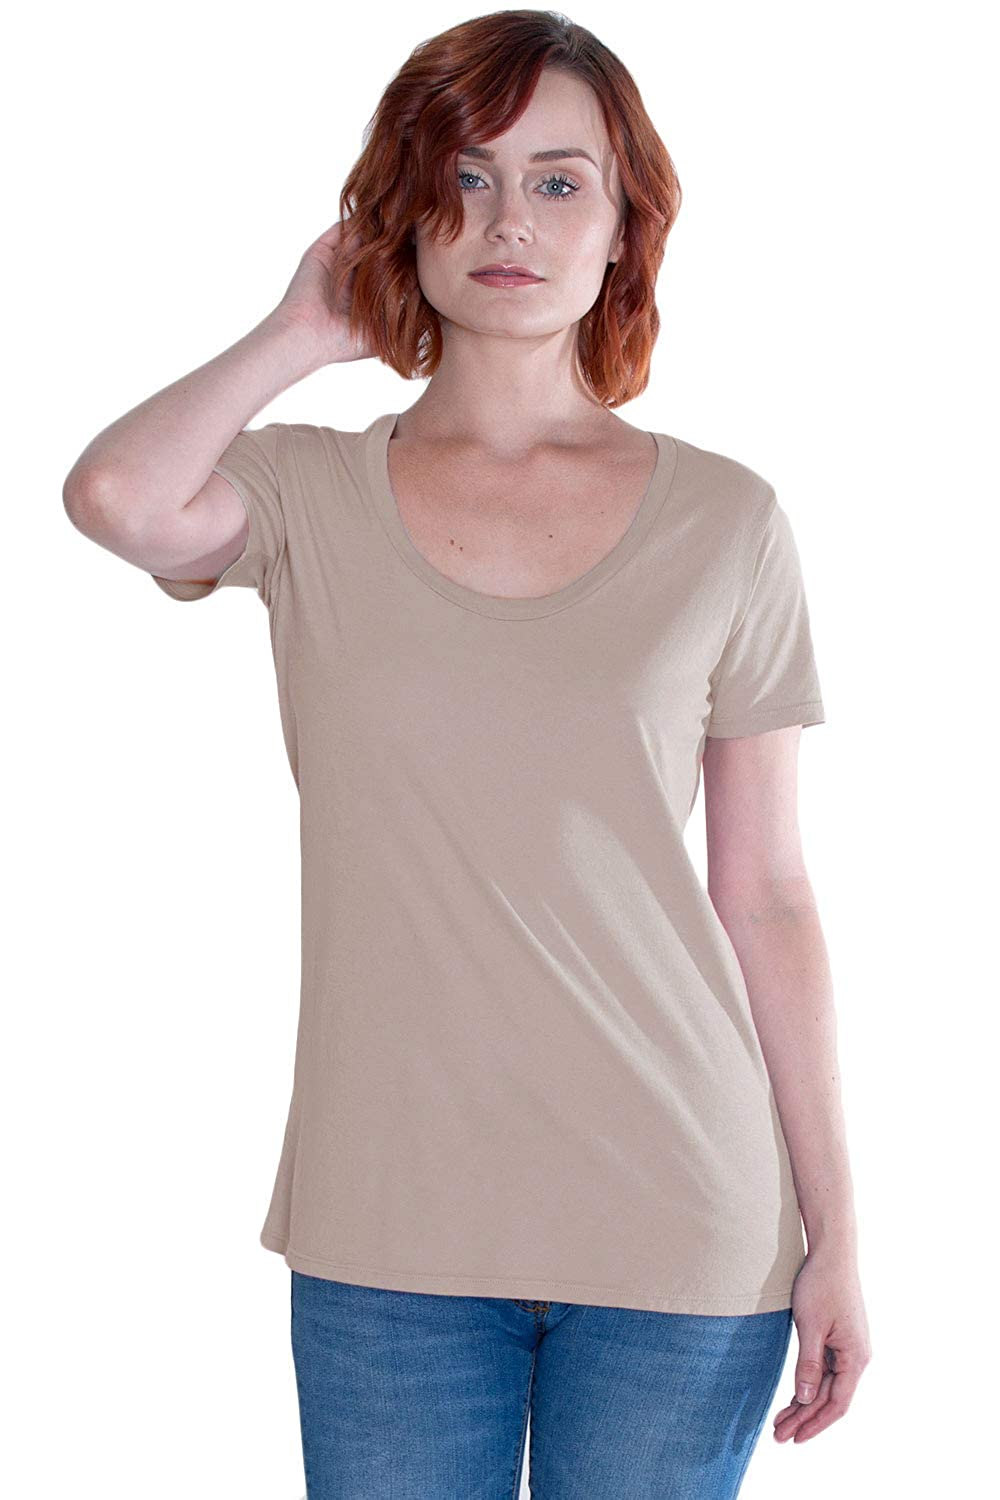 54ab21cb4c4 Organic Cotton Scoop Neck Tee, Non-GMO, Eco Friendly, Made in The USA at  Amazon Women's Clothing store: